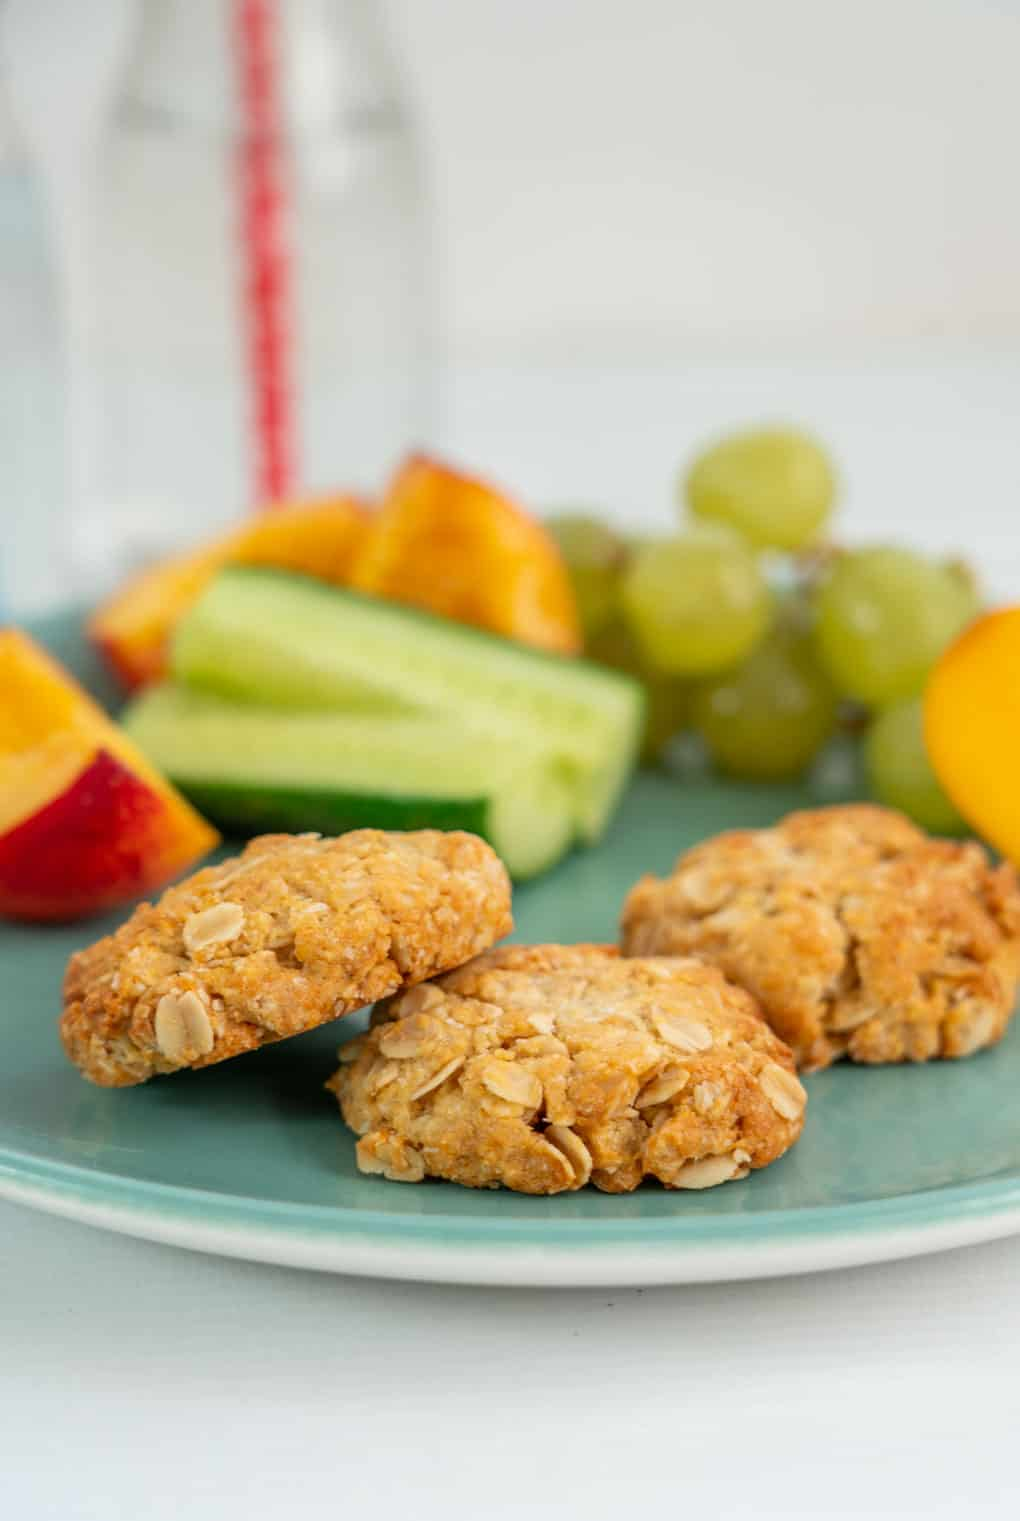 Snack plate of anzac biscuits with fruit and vegetables